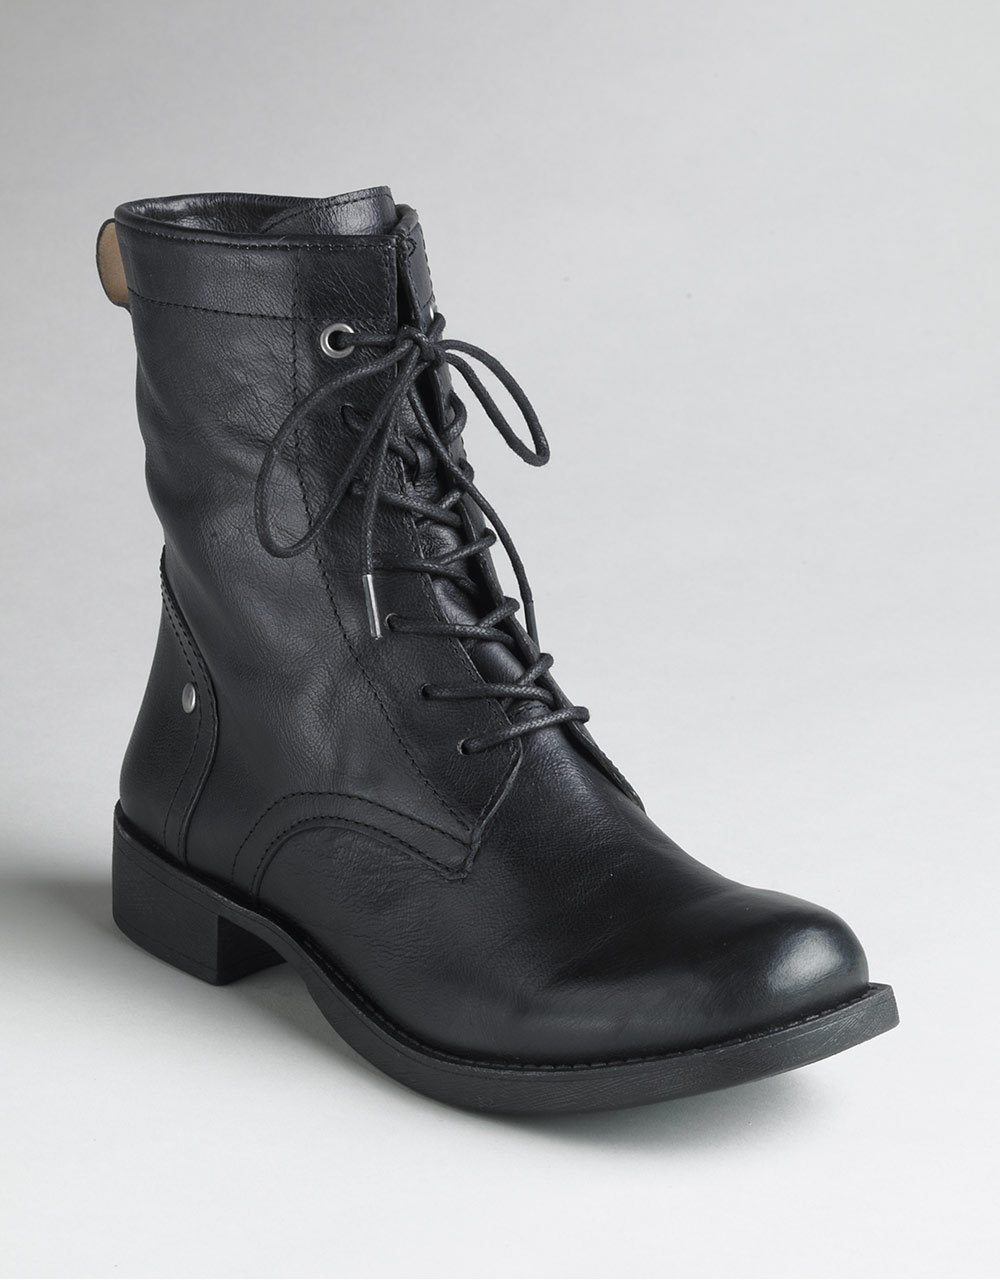 Nine West Takotae Lace Up Boots In Black Black Leather